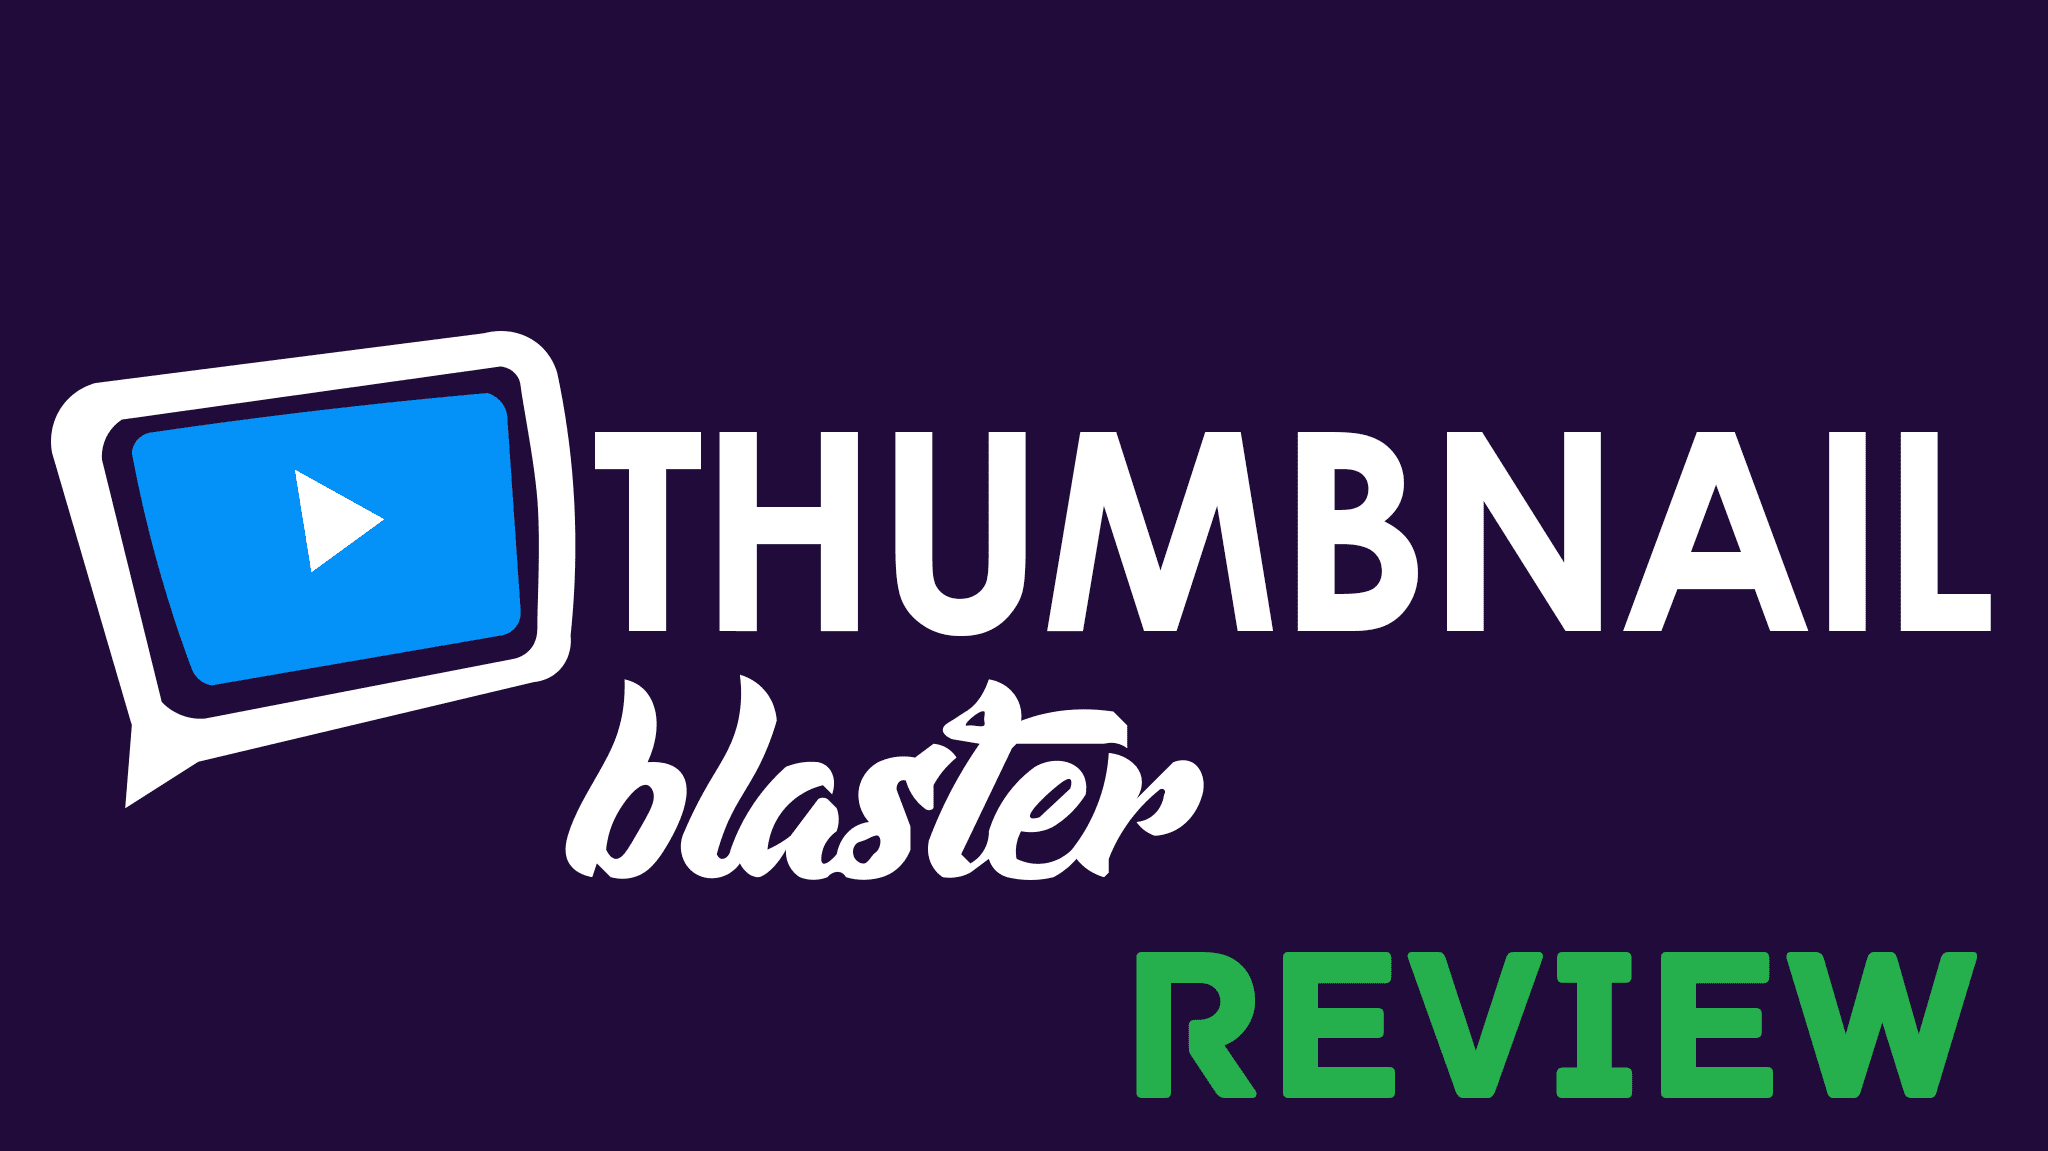 Thumbnail Blaster Review – The Best YouTube Video Thumbnail Maker?